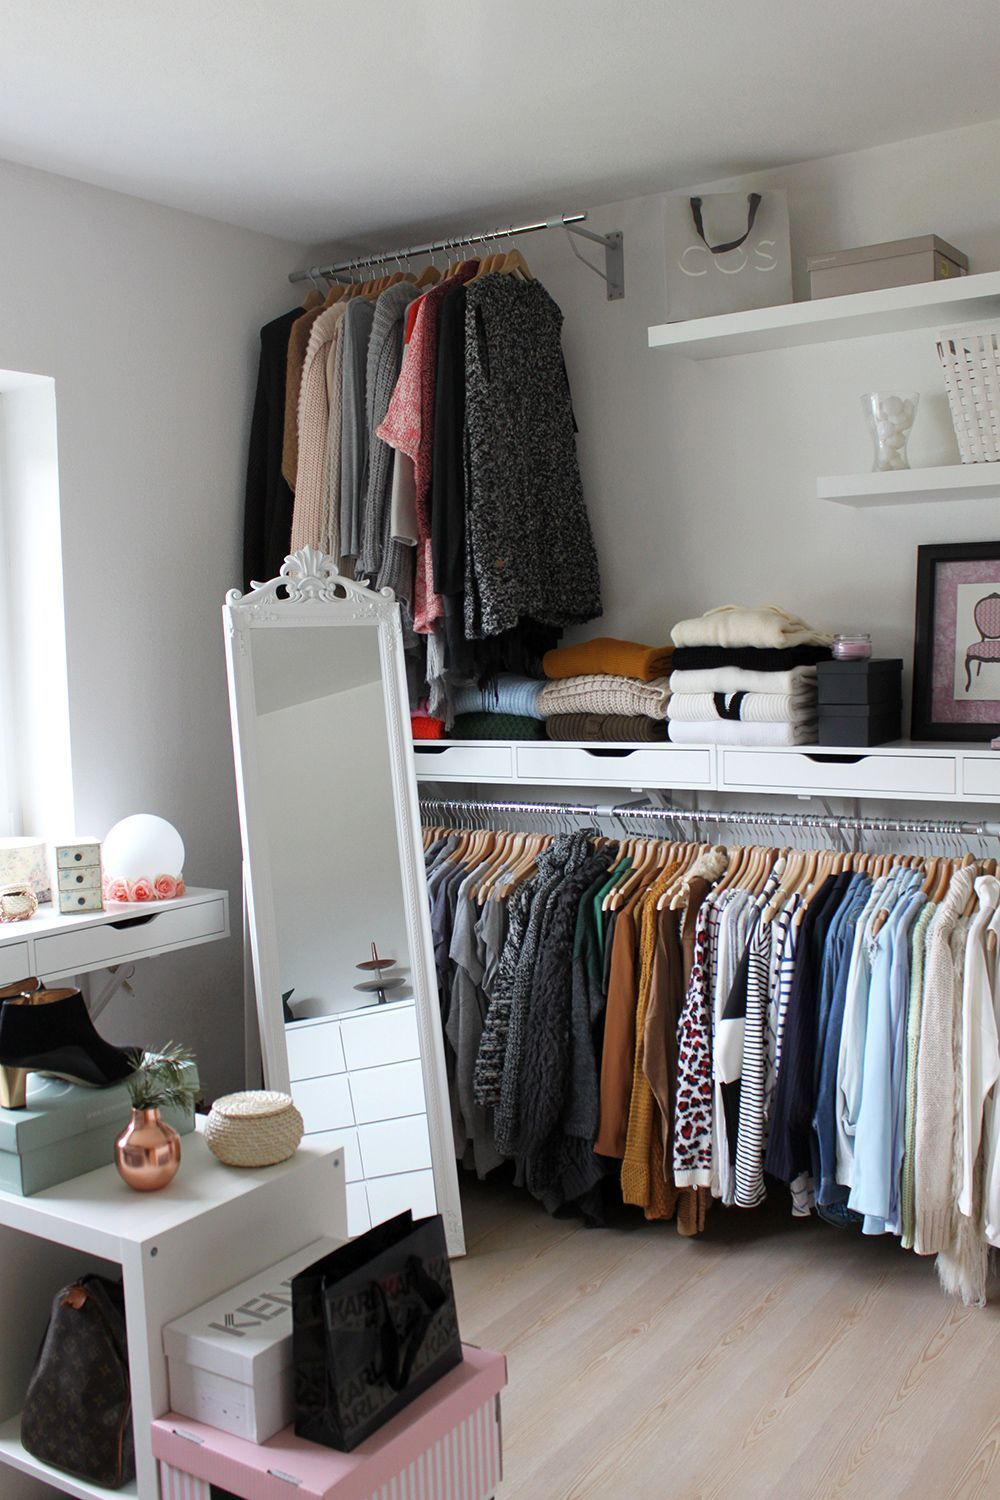 25+ Closet Organization Ideas That Will Make Your Room Look ...